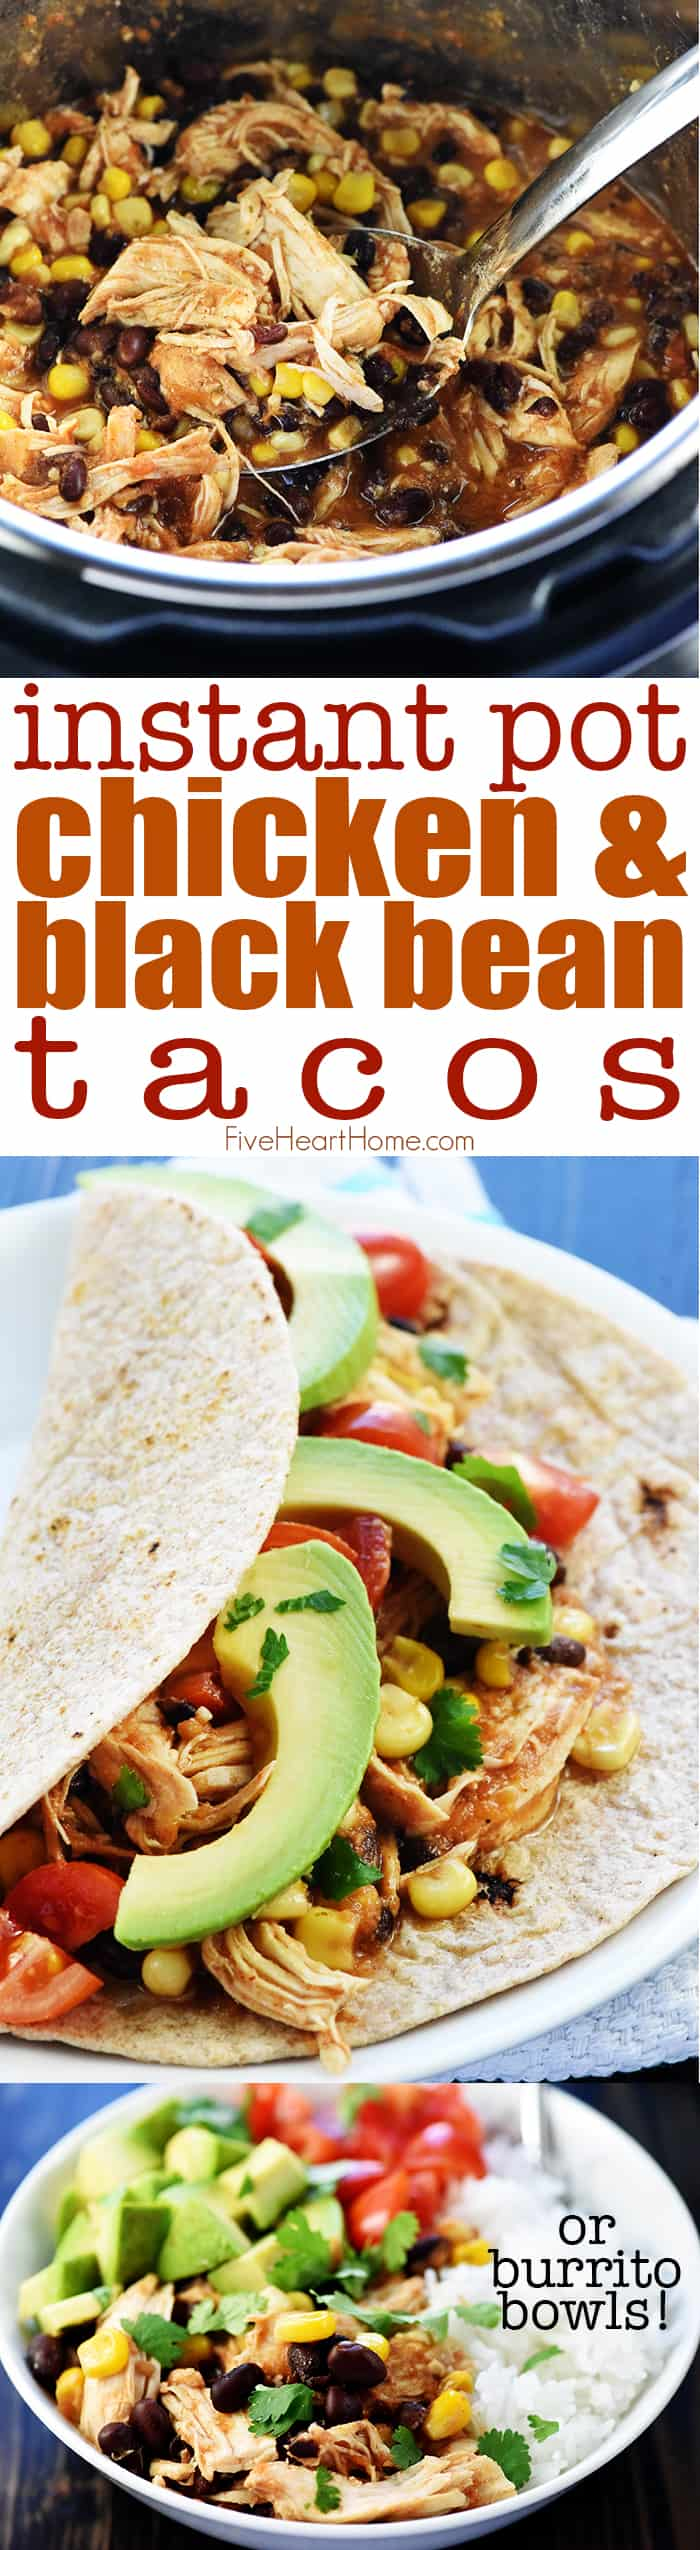 Instant Pot Chicken & Black Bean Tacos {or} Burrito Bowls ~ this tender, flavorful filling -- loaded with chicken, black beans, corn, salsa, and taco seasoning -- is effortlessly made in the pressure cooker! | FiveHeartHome.com